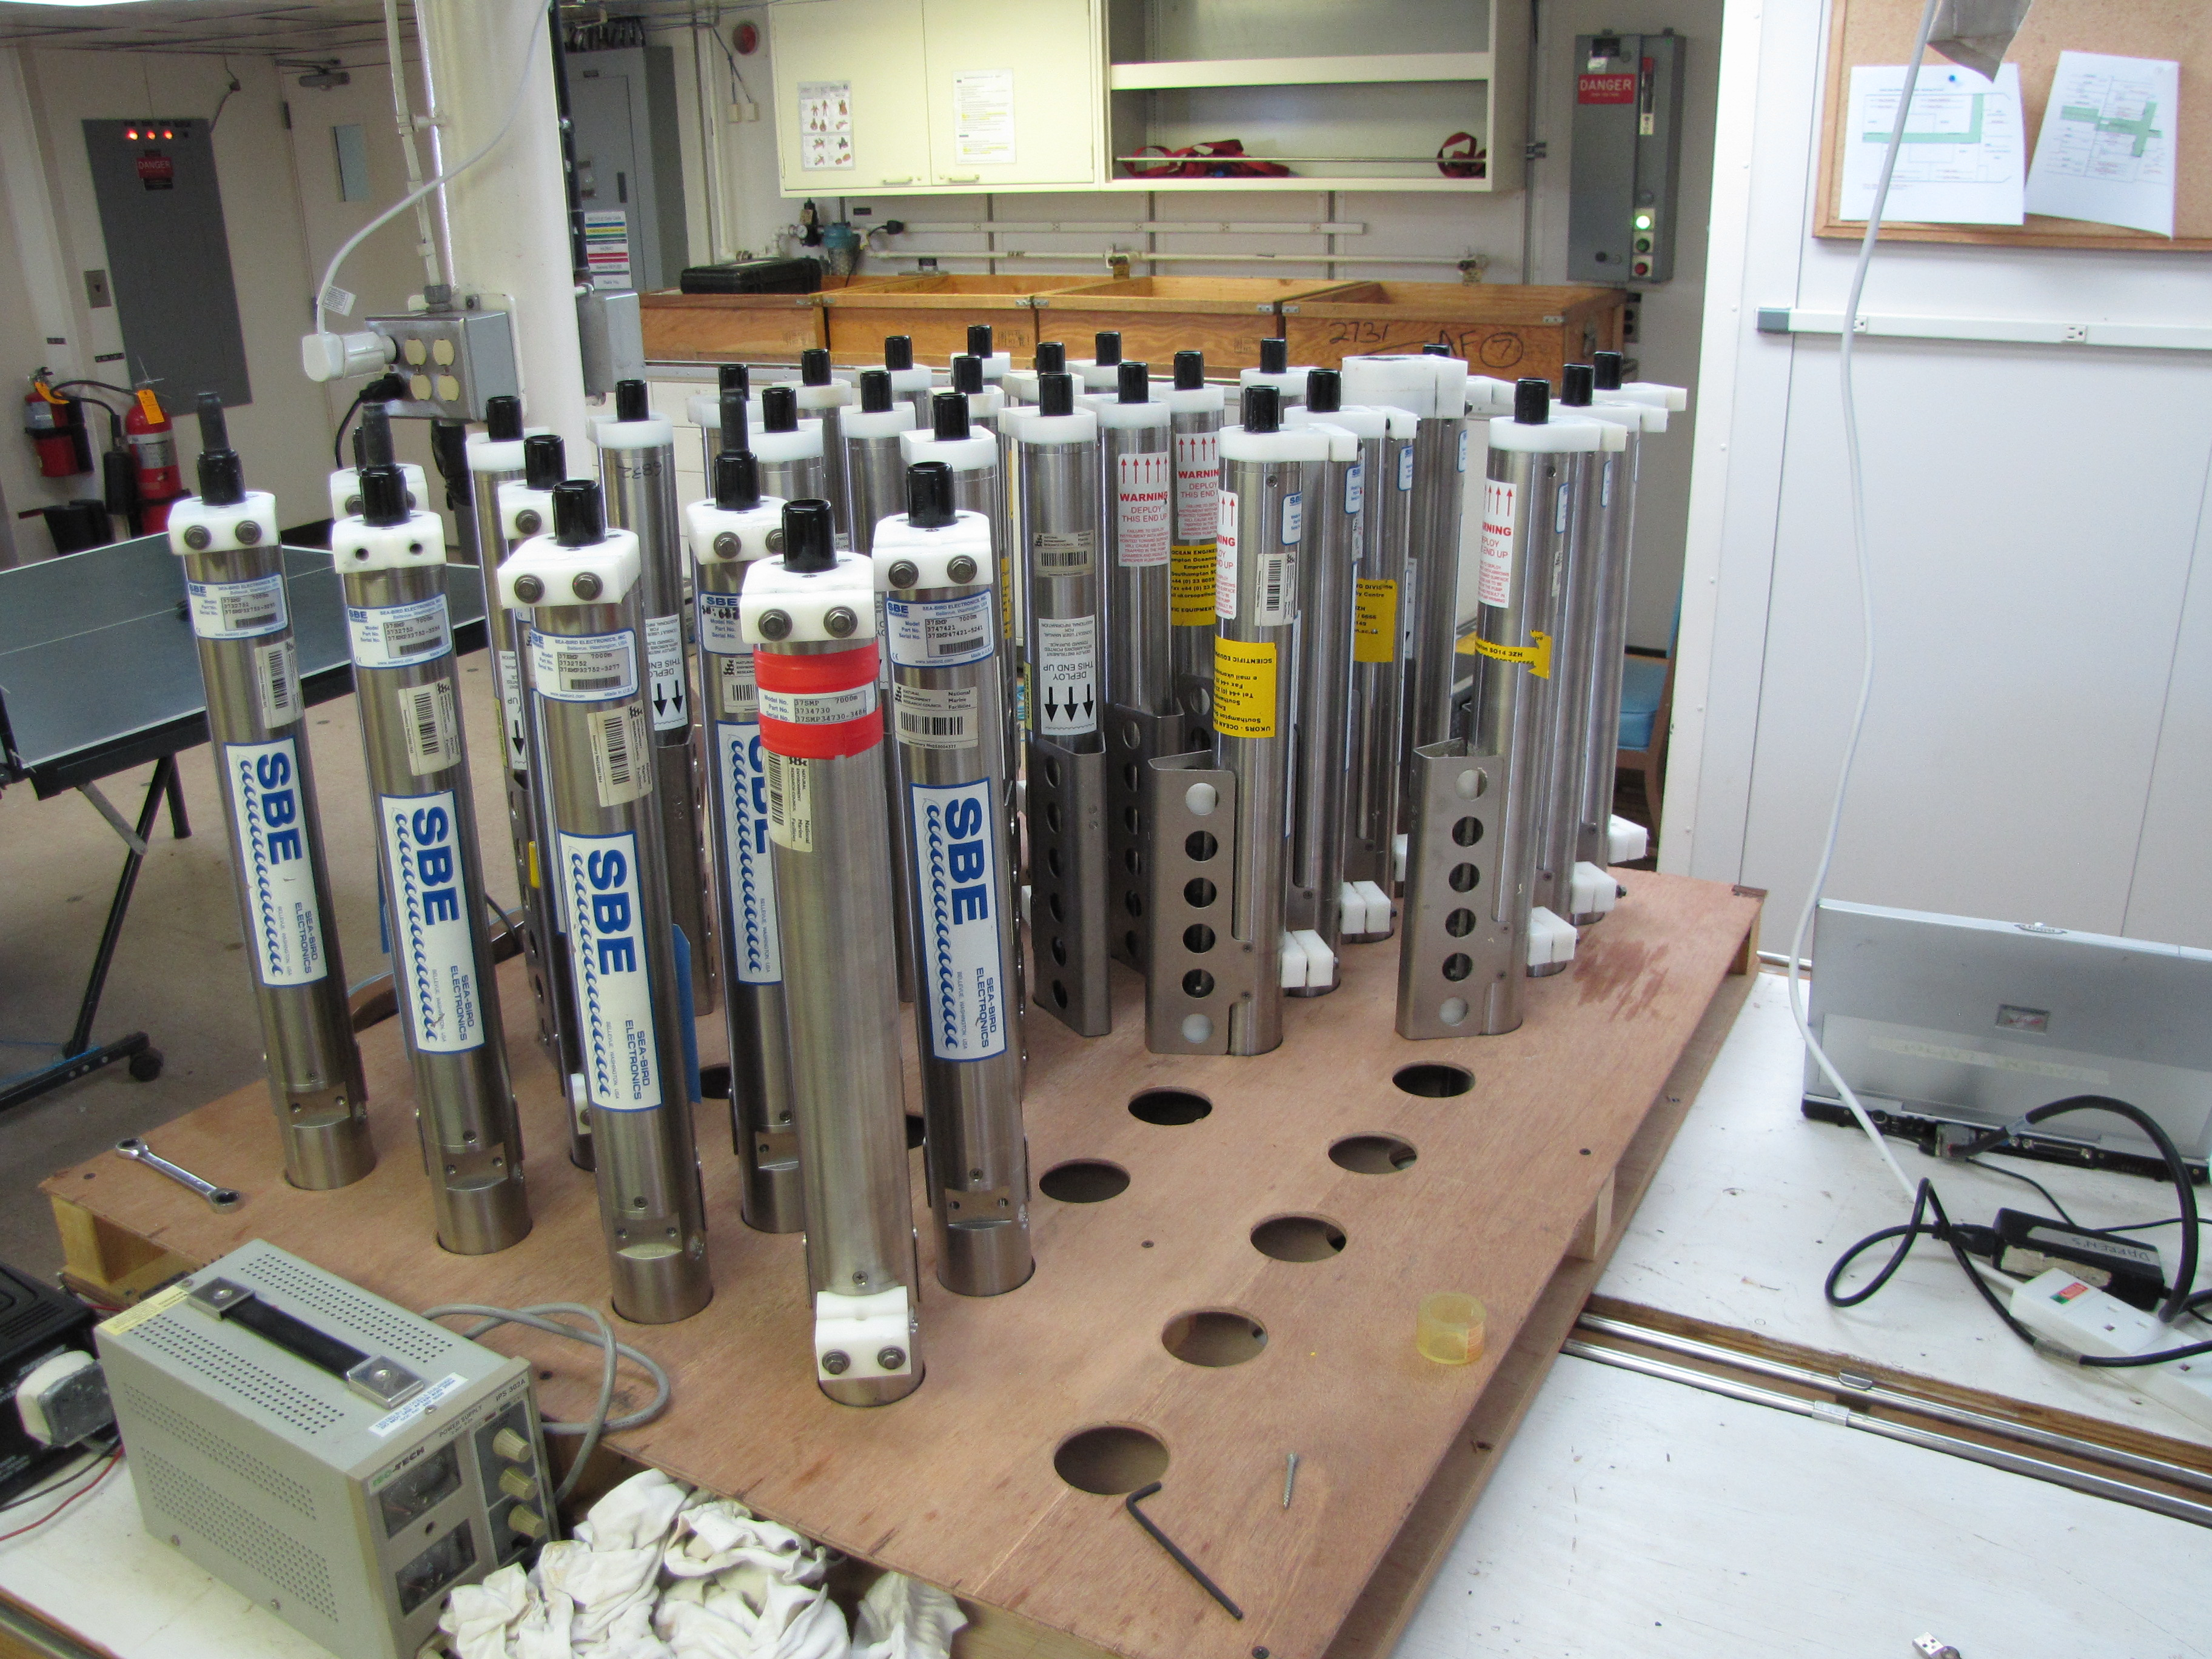 In the lab: Scores of sensors serviced and ready for deployment